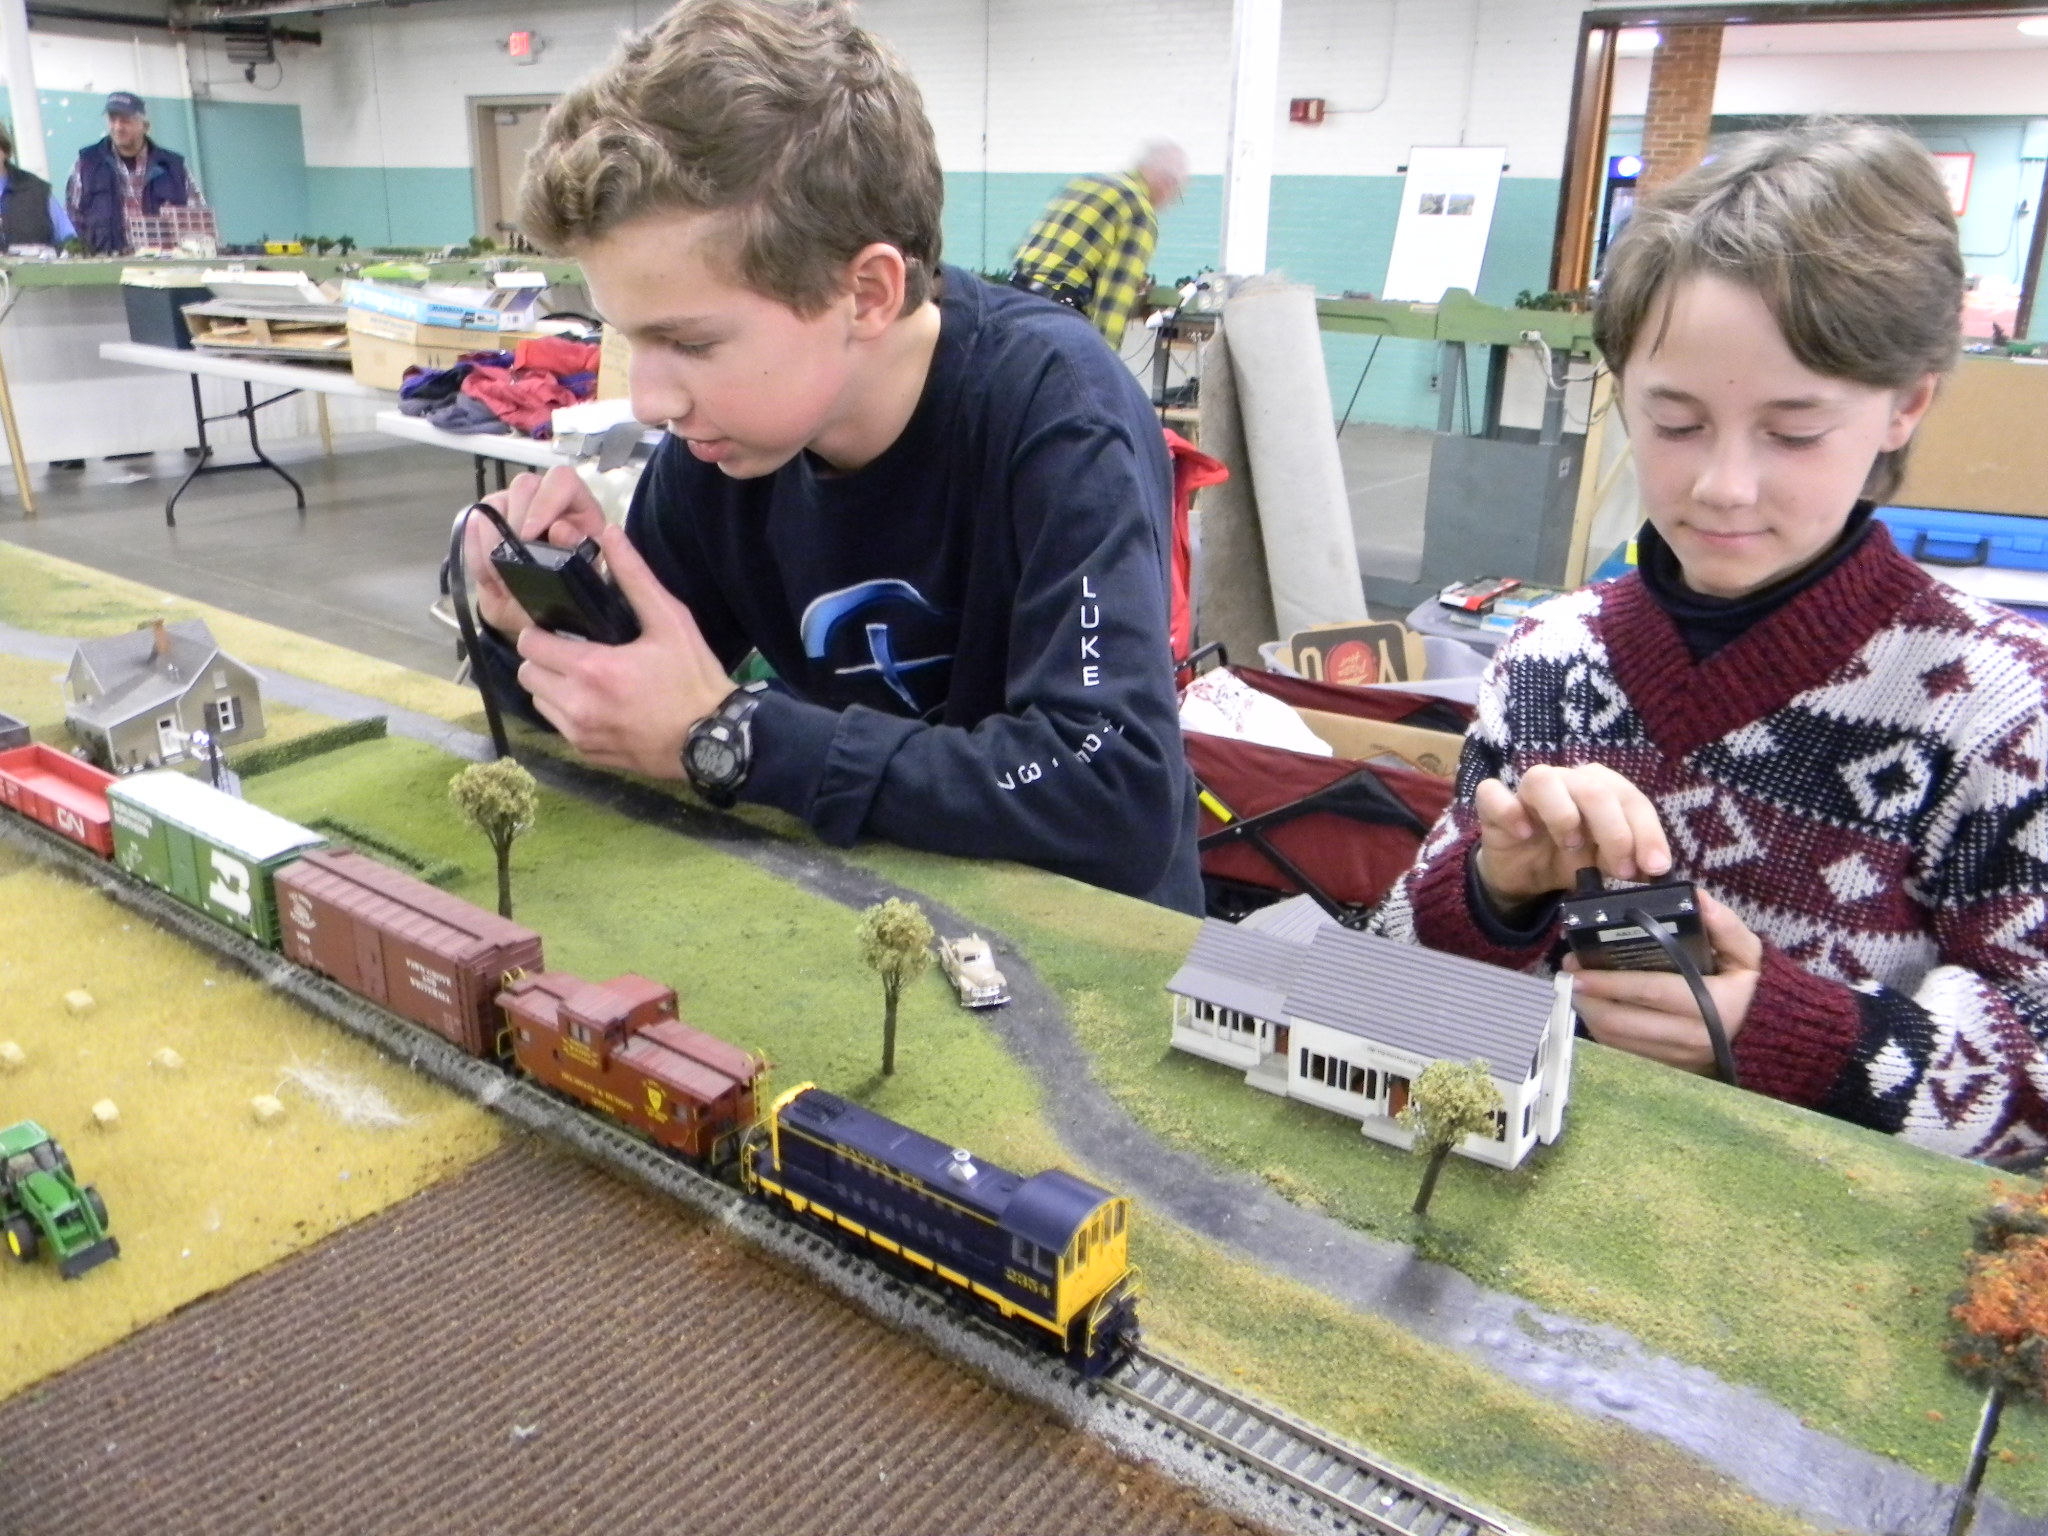 You think there's no young folks into model trains? look again! - Model  Railroader Magazine - Model Railroading, Model Trains, Reviews, Track  Plans, and Forums